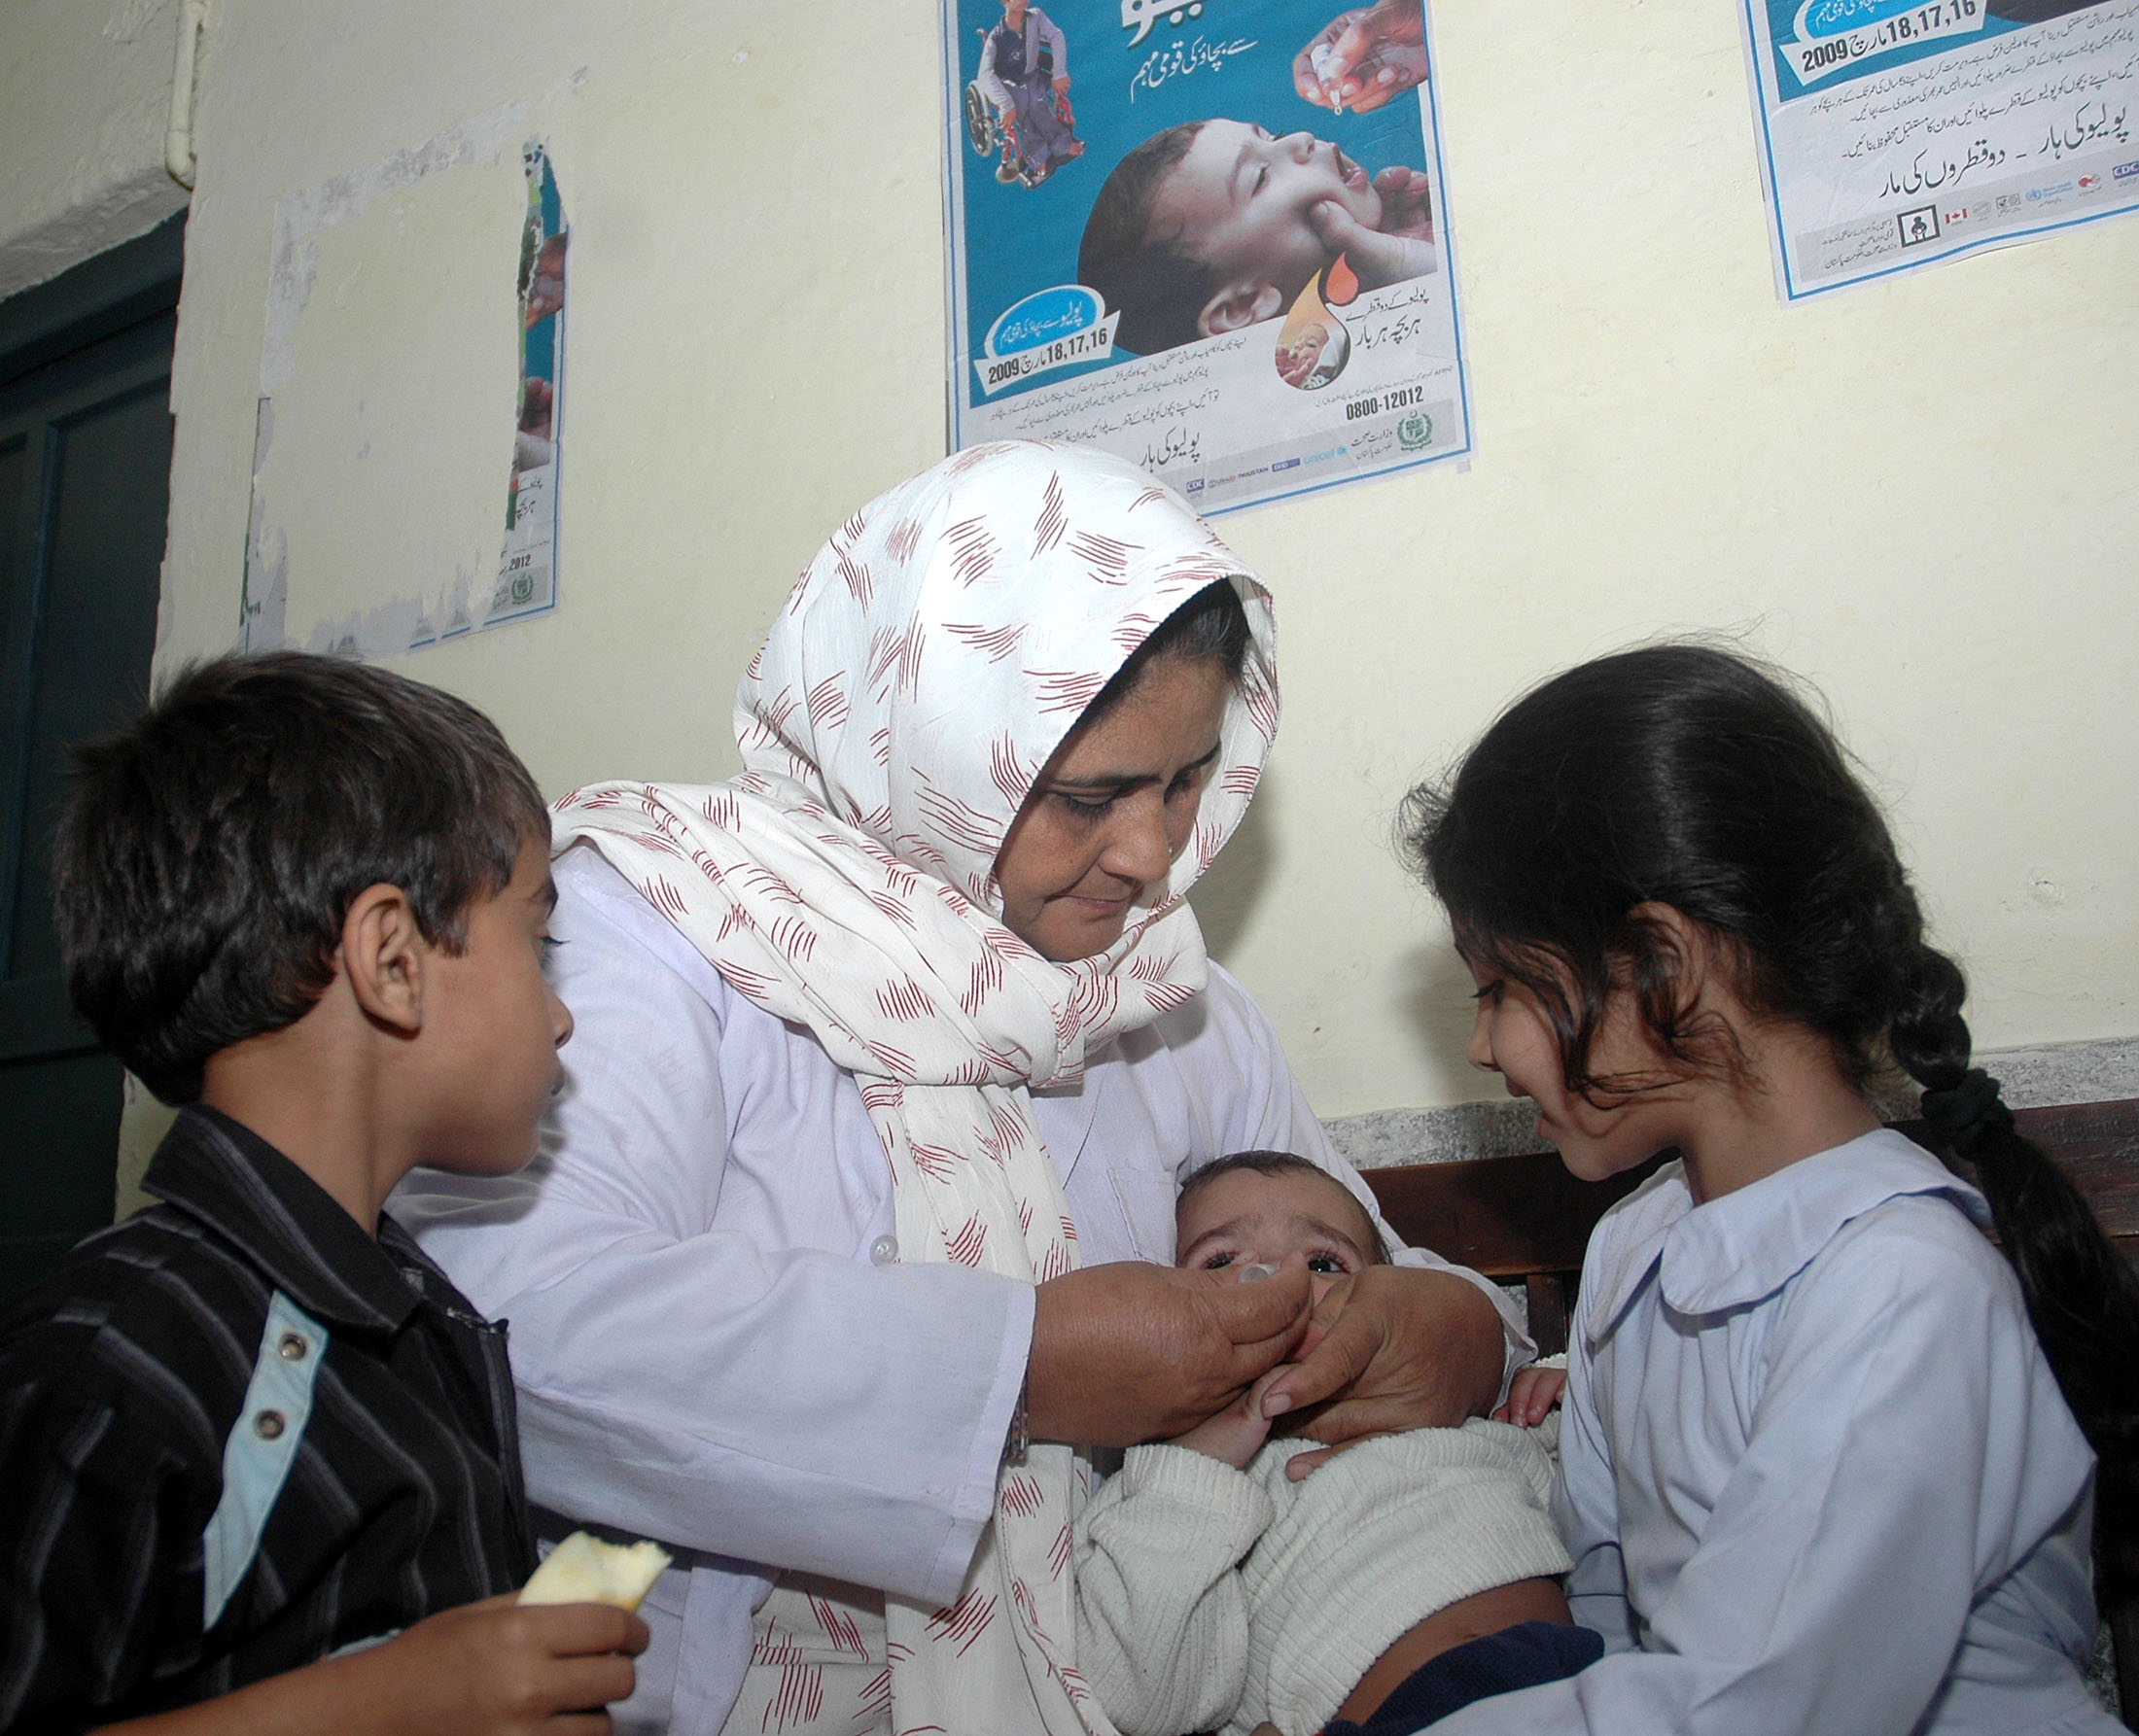 Polio has re-surfaced in districts hit by militancy